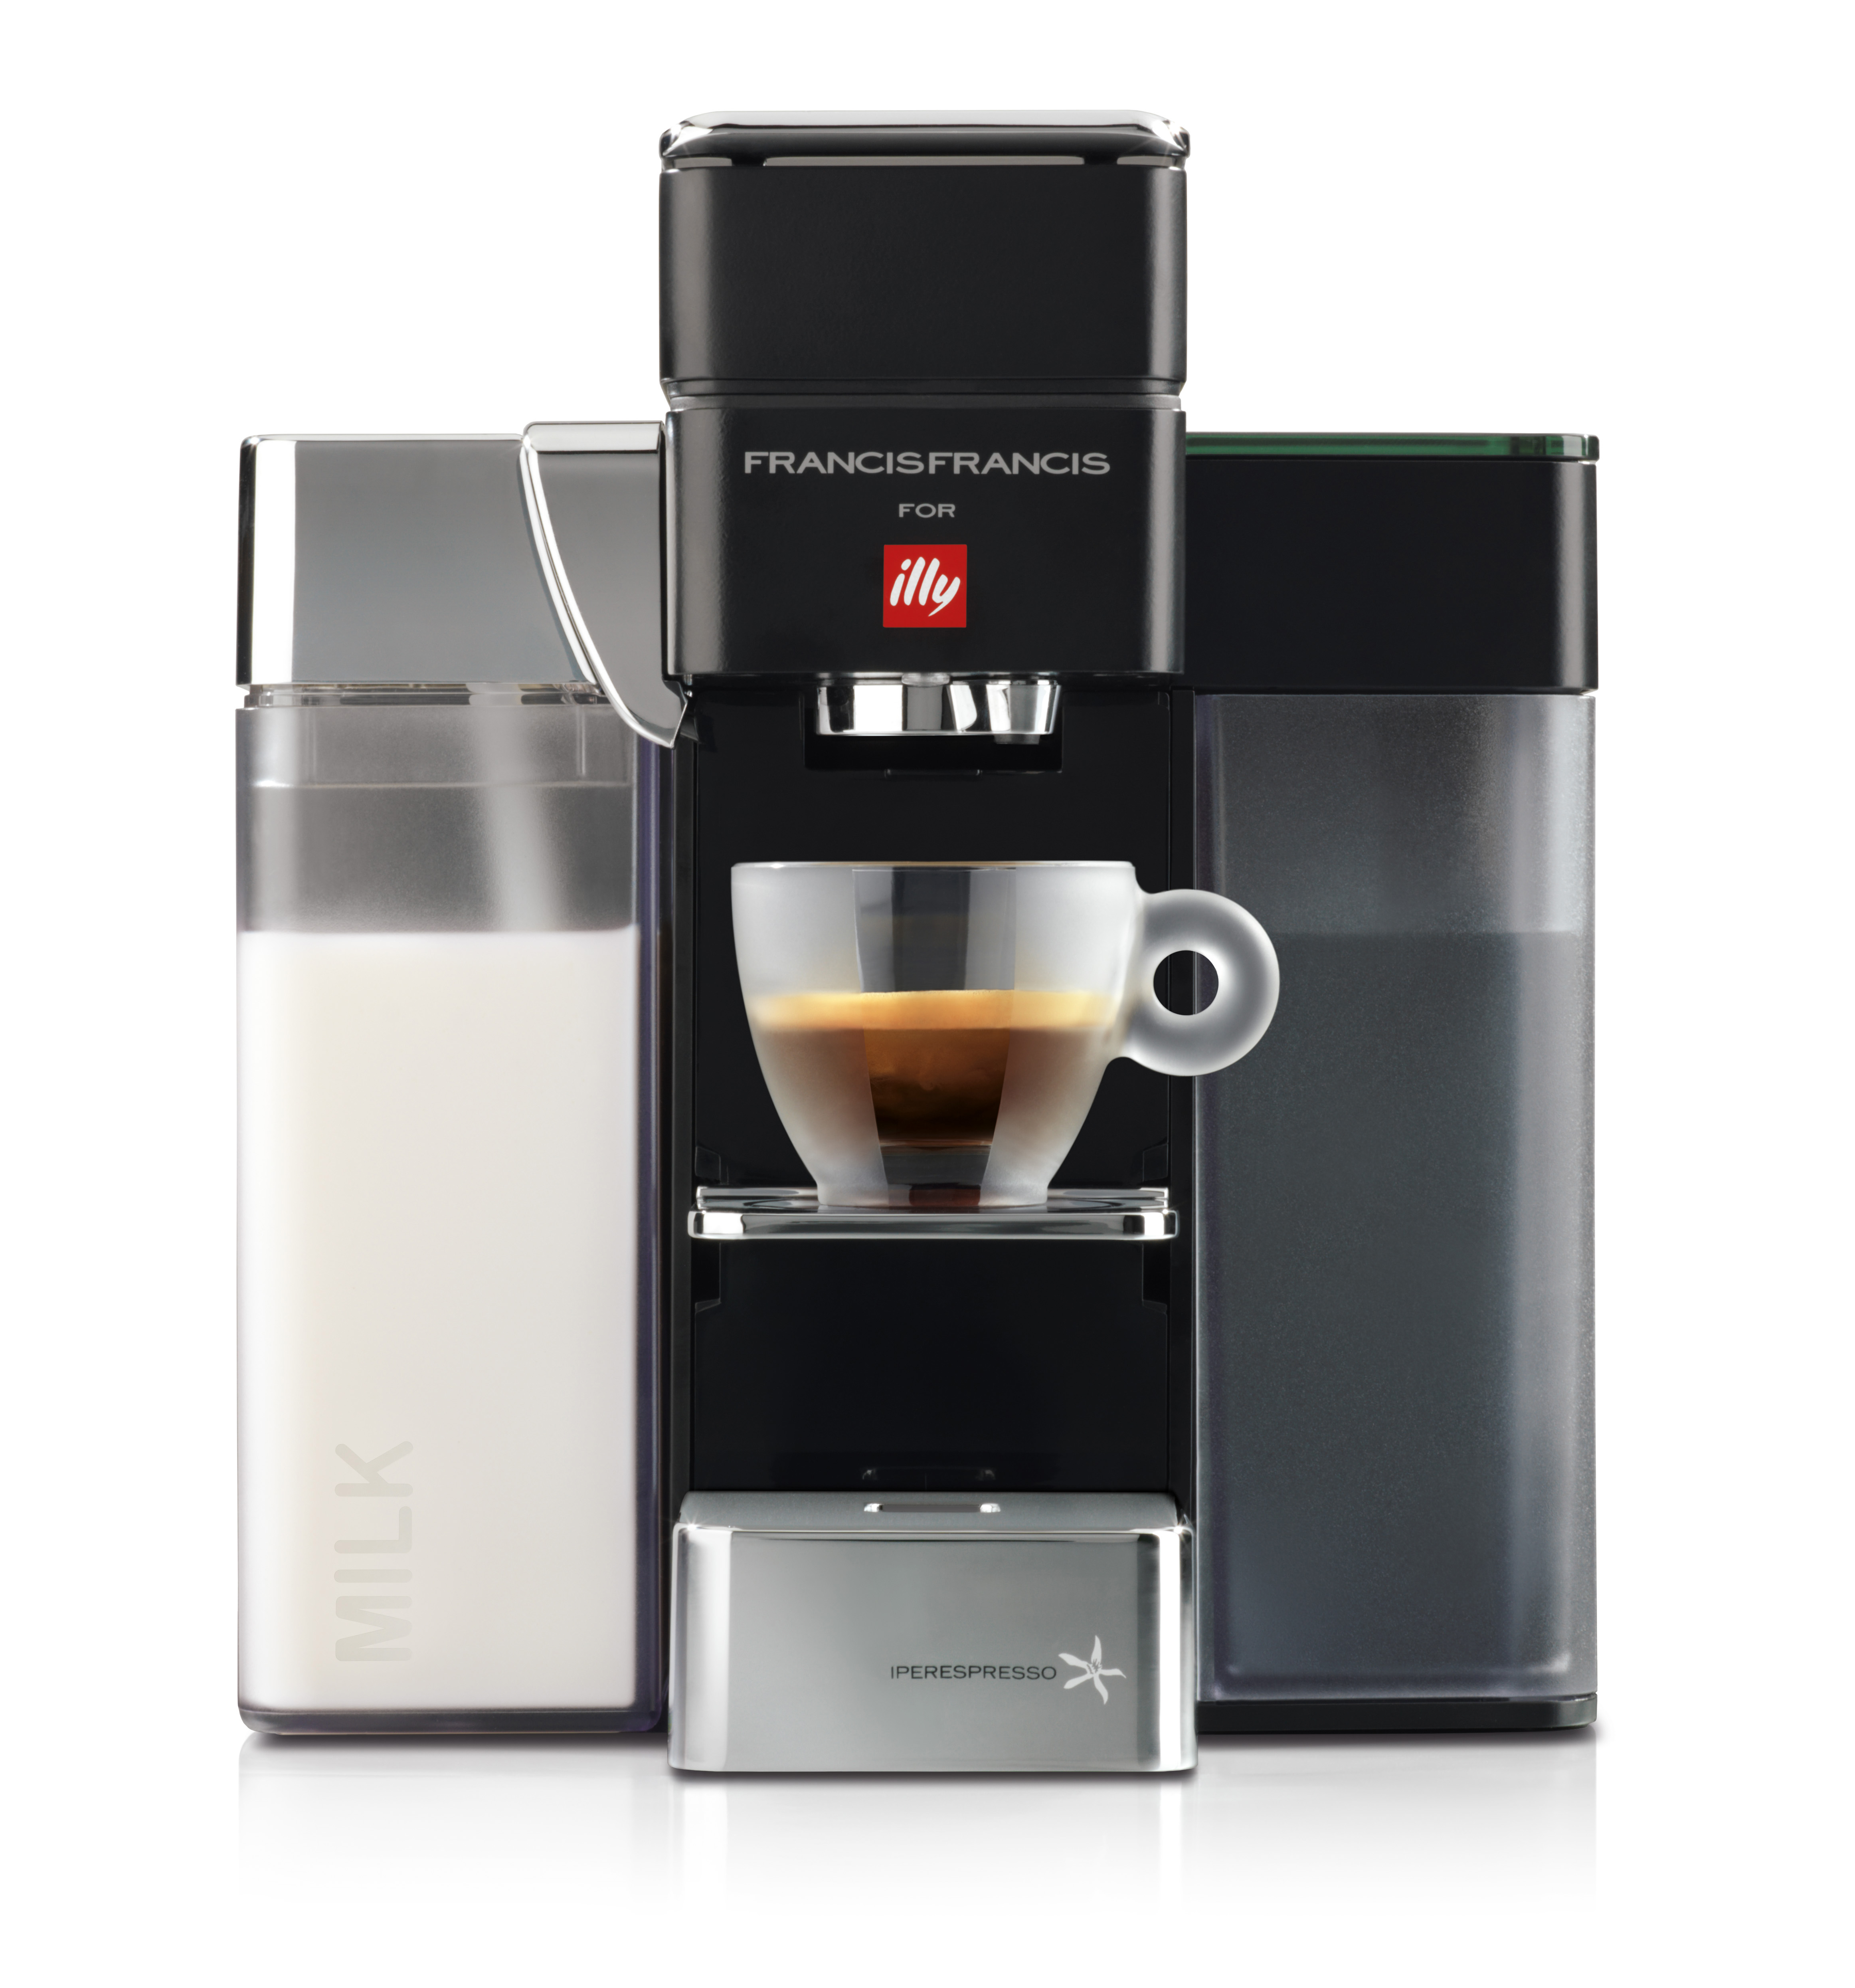 Electronic Coffee Machine Ebay illy francis y5 milk espresso amp coffee machine ebay coffee